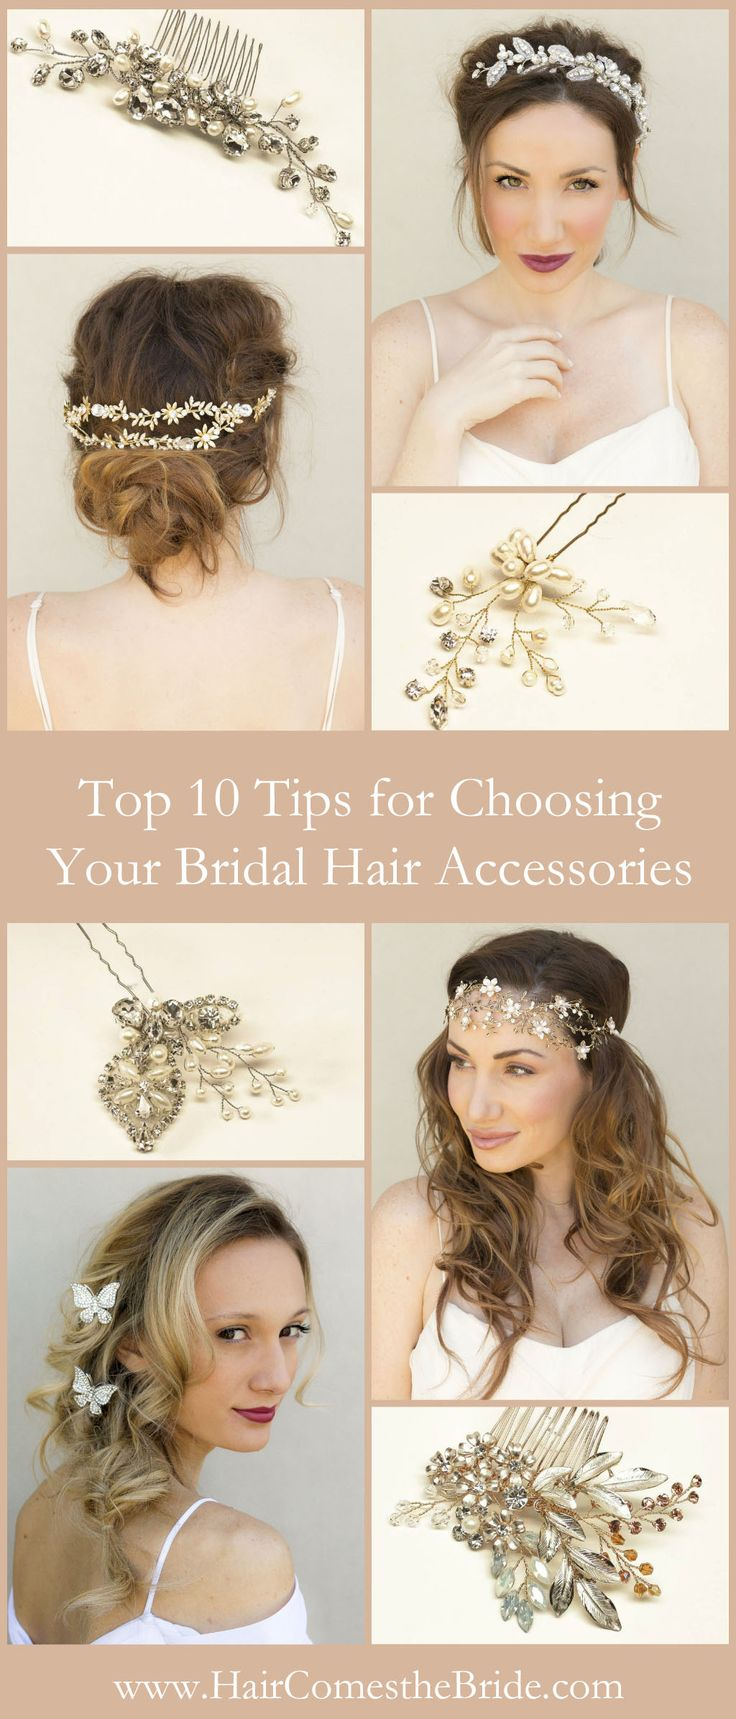 725 best wedding images on Pinterest | Bridal hairstyles, Wedding ...